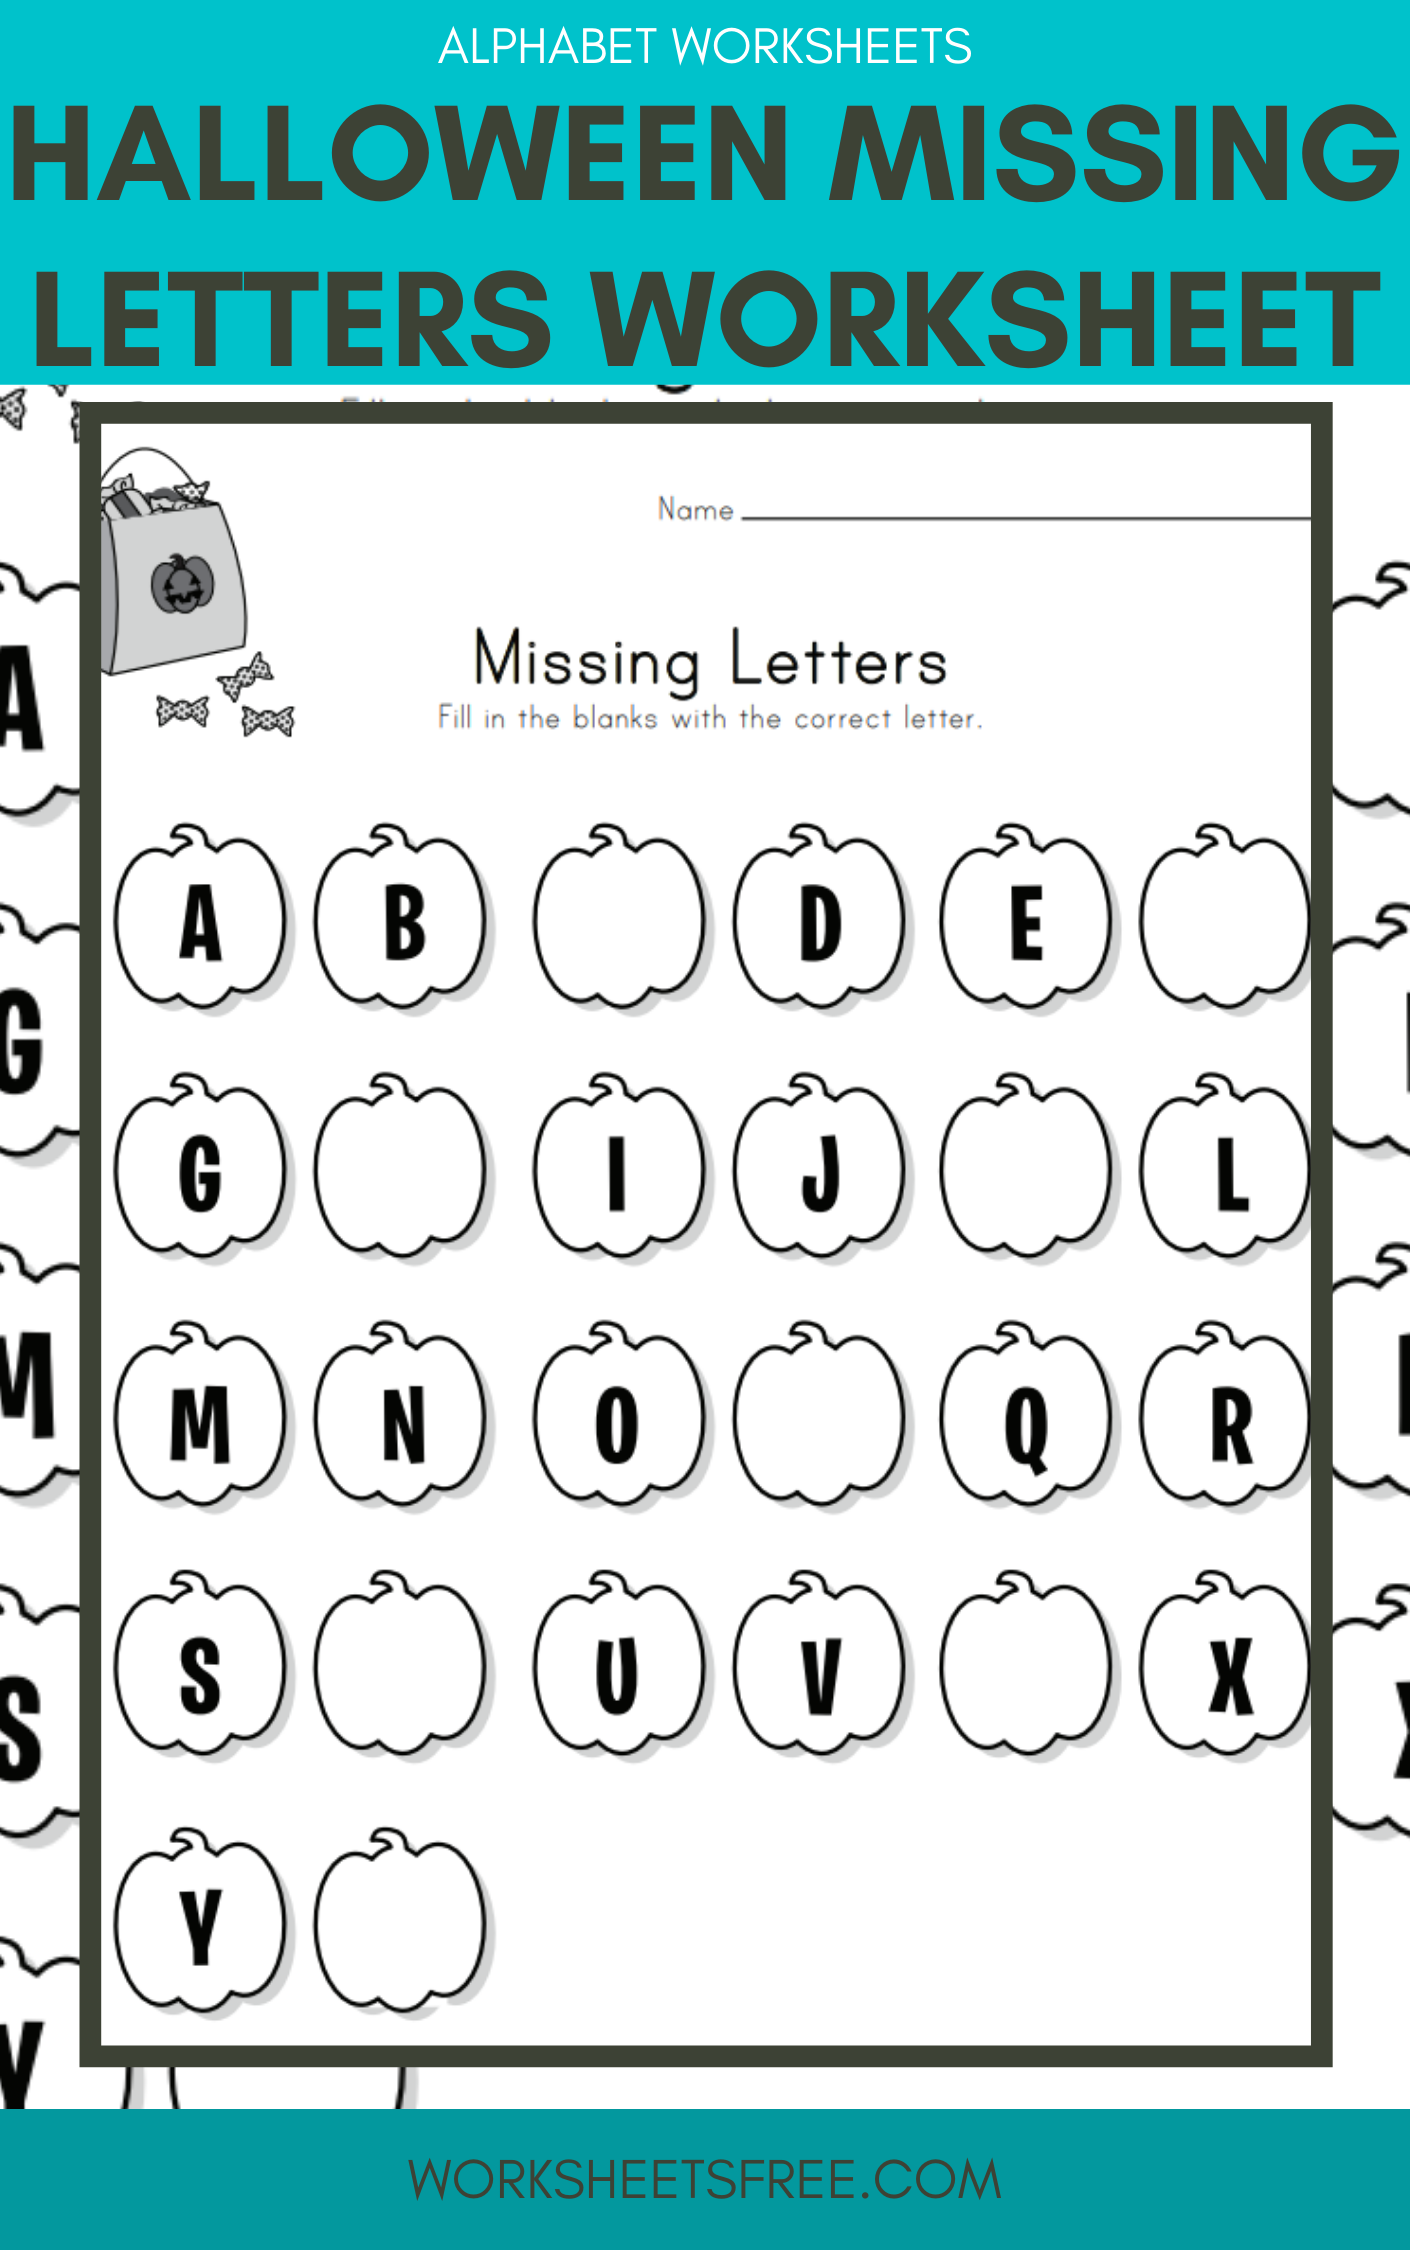 7 Missing Letters Worksheets